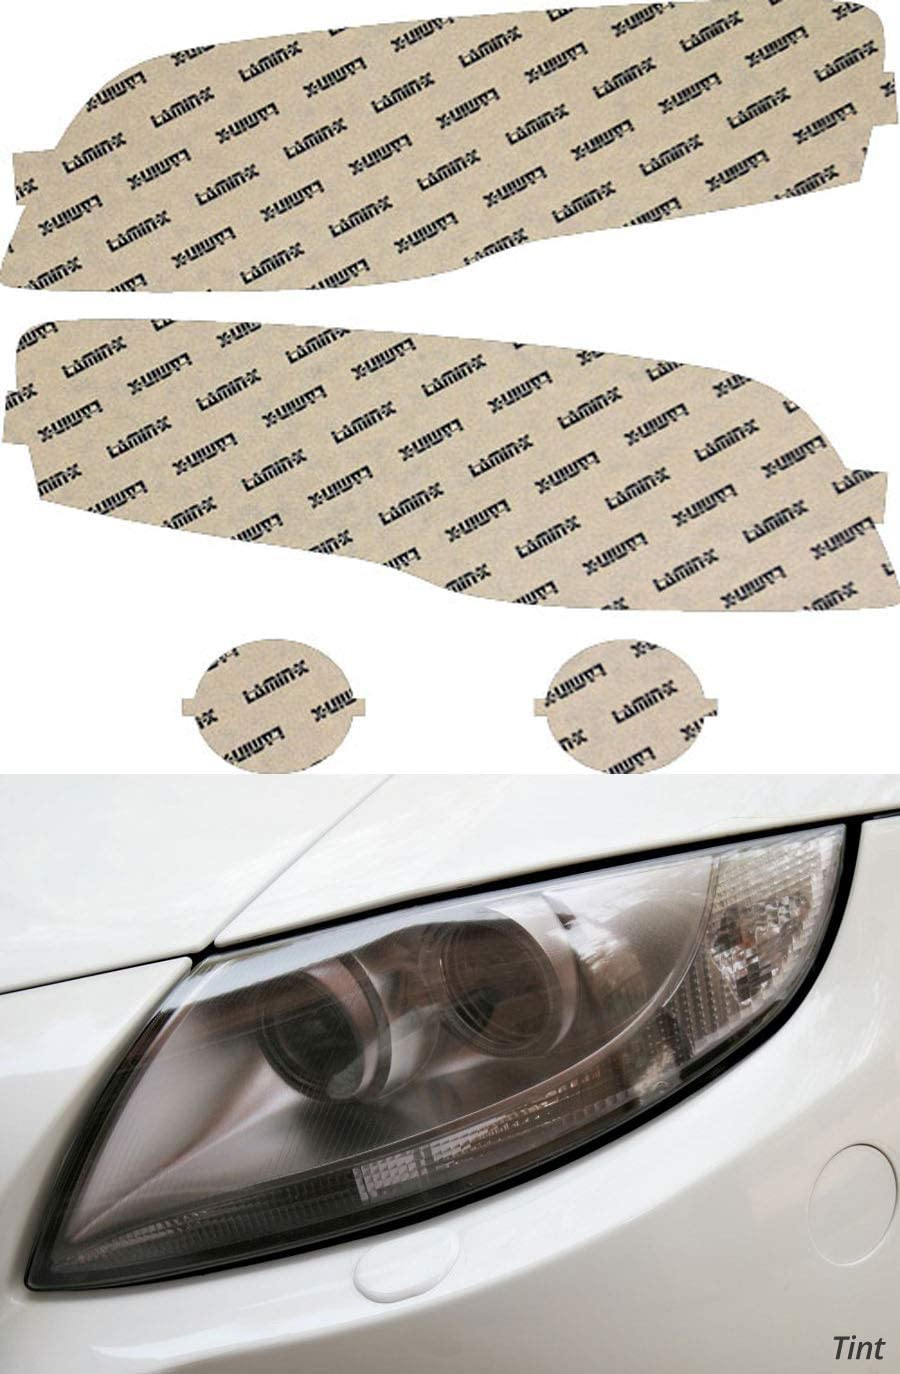 Lamin-x Custom Fit Tint Headlight Covers A4 06-08 for Audi Houston Mall S4 All items free shipping